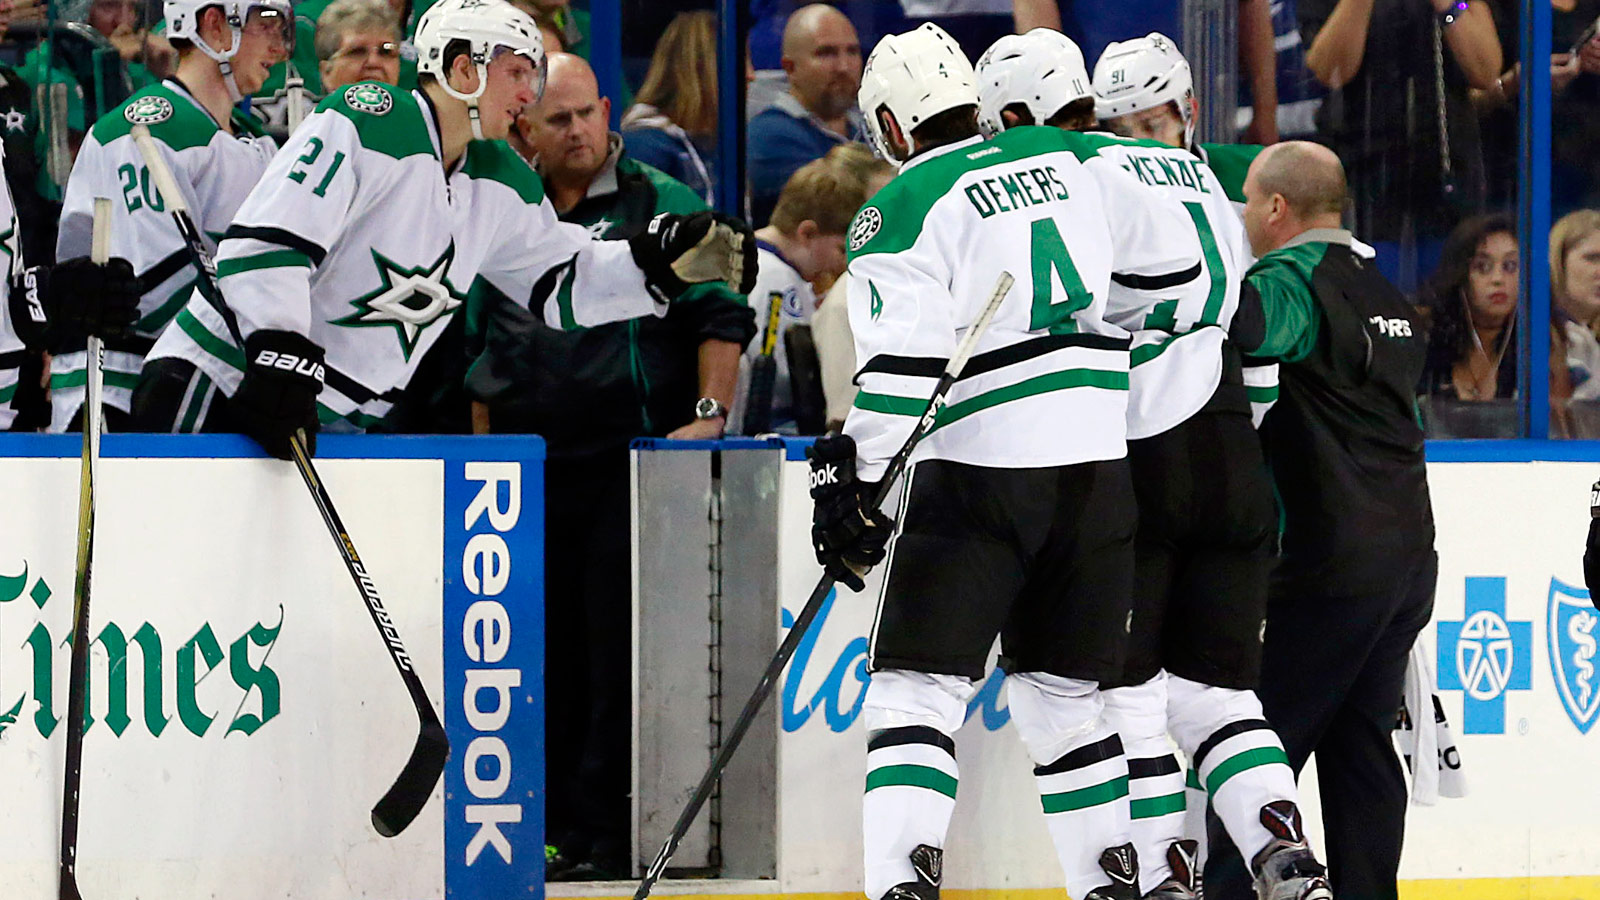 Stars' Curtis McKenzie hospitalized, in 'excruciating pain' following massive hit